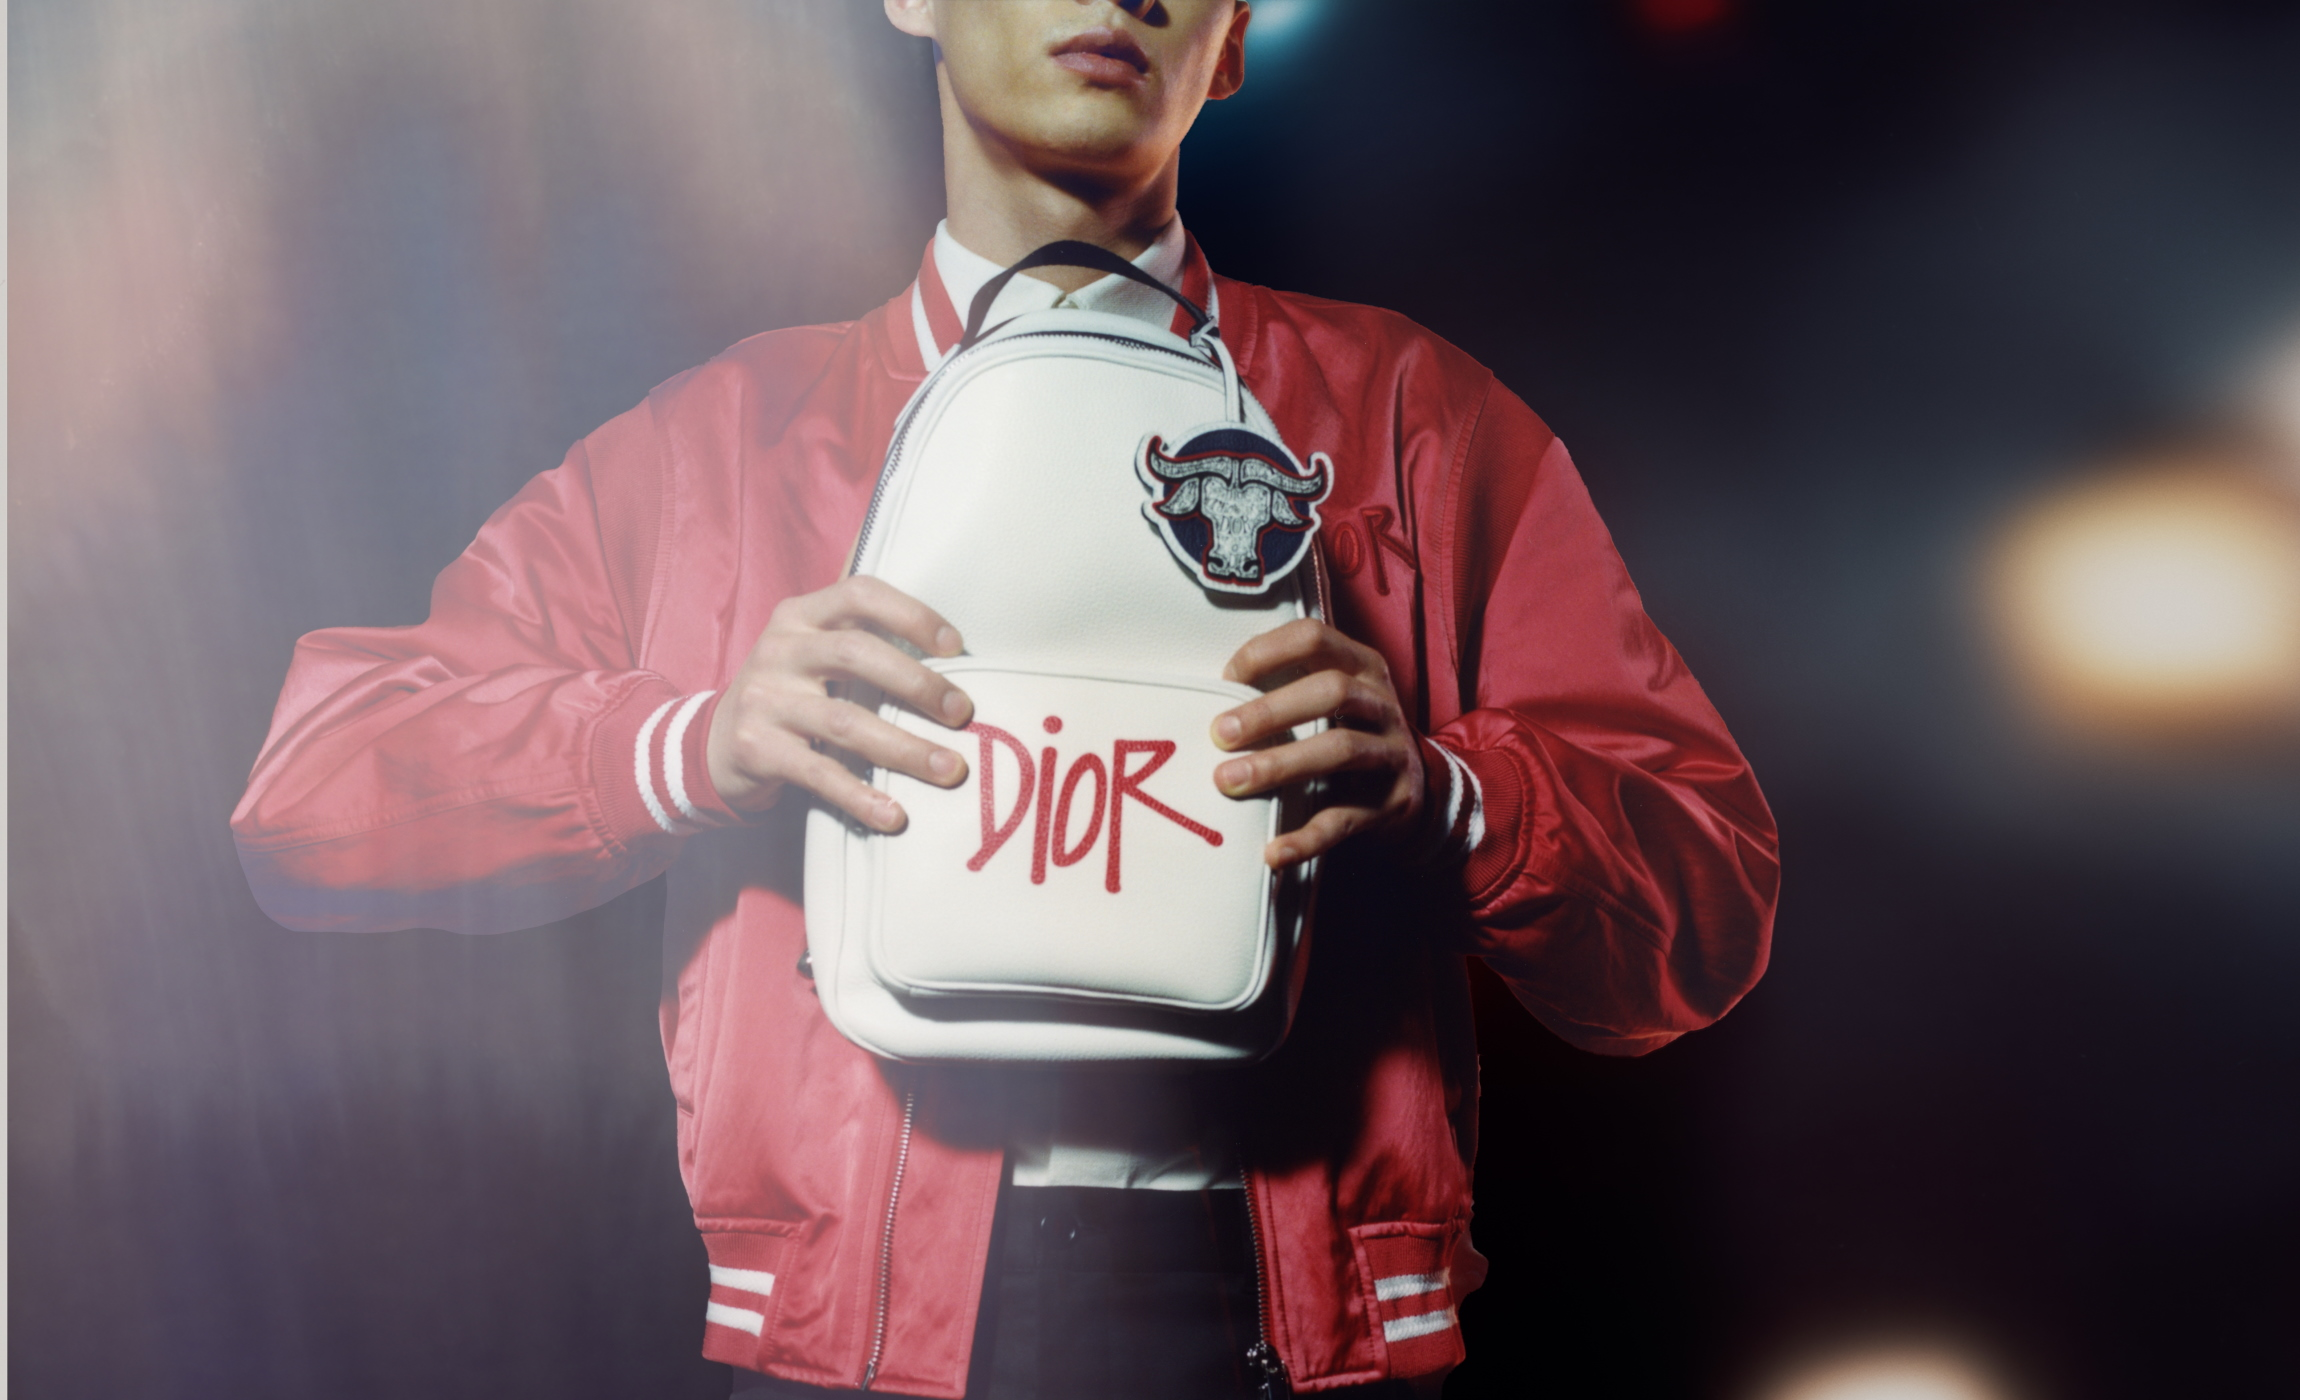 Dior Gets Festive With Its New Chinese New Year Men's Capsule